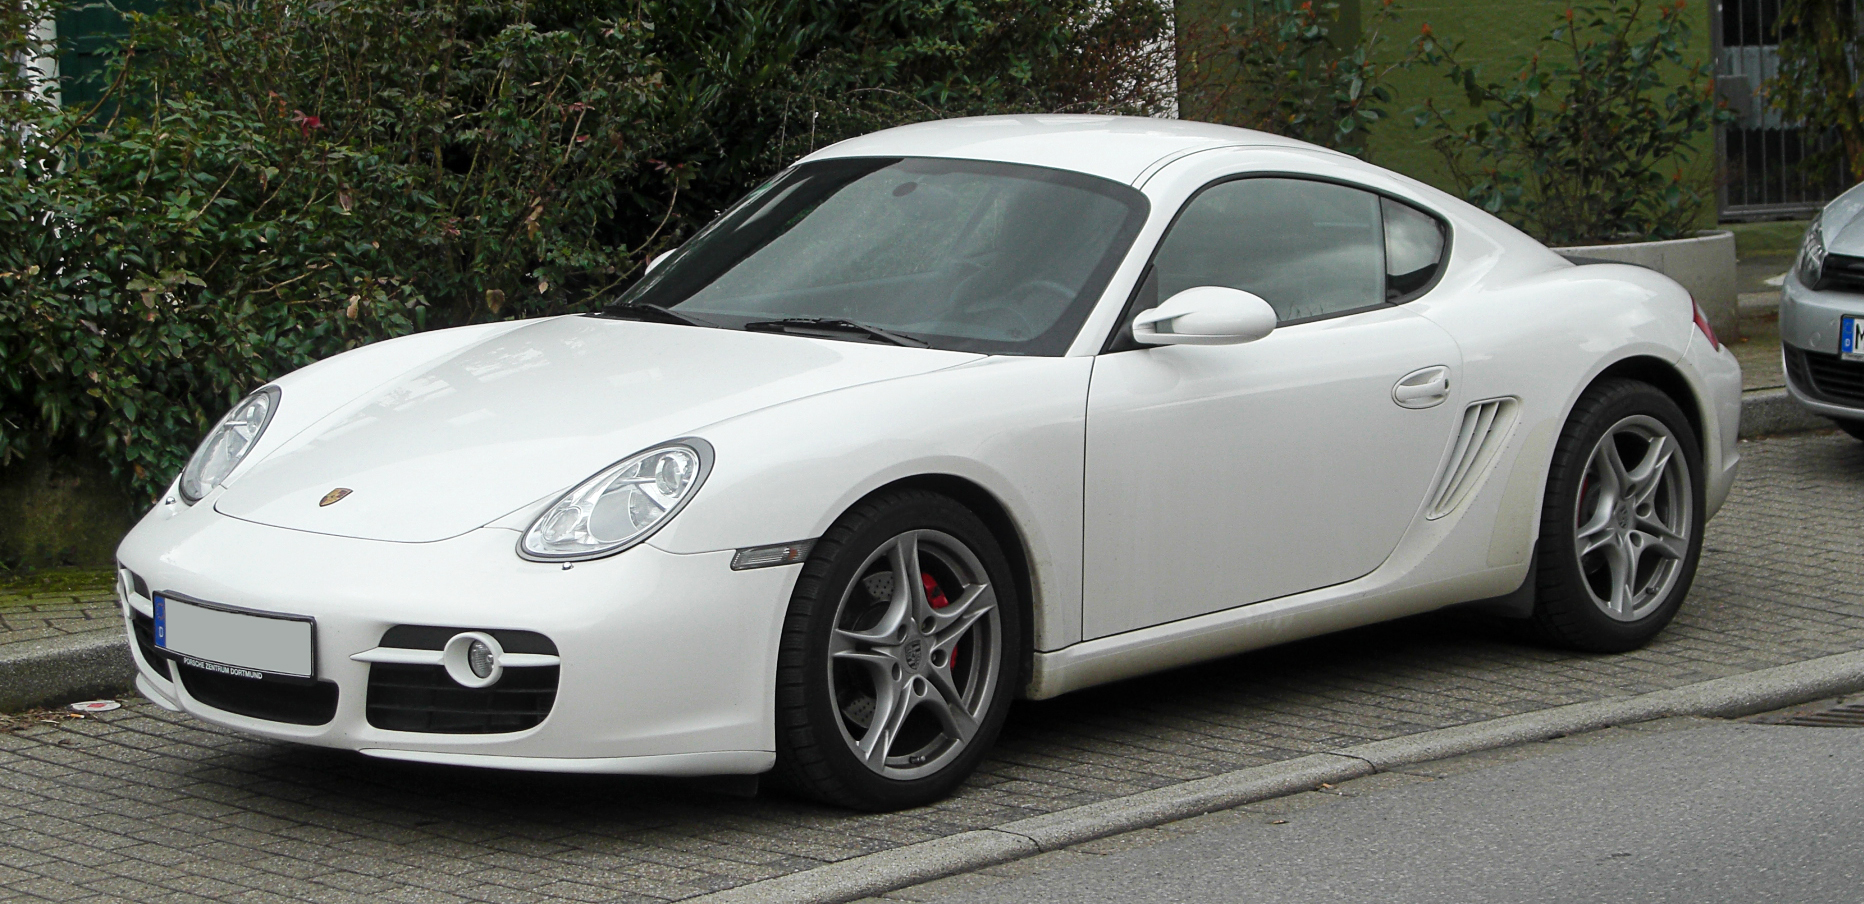 Porsche Cayman S 2011 photo - 7